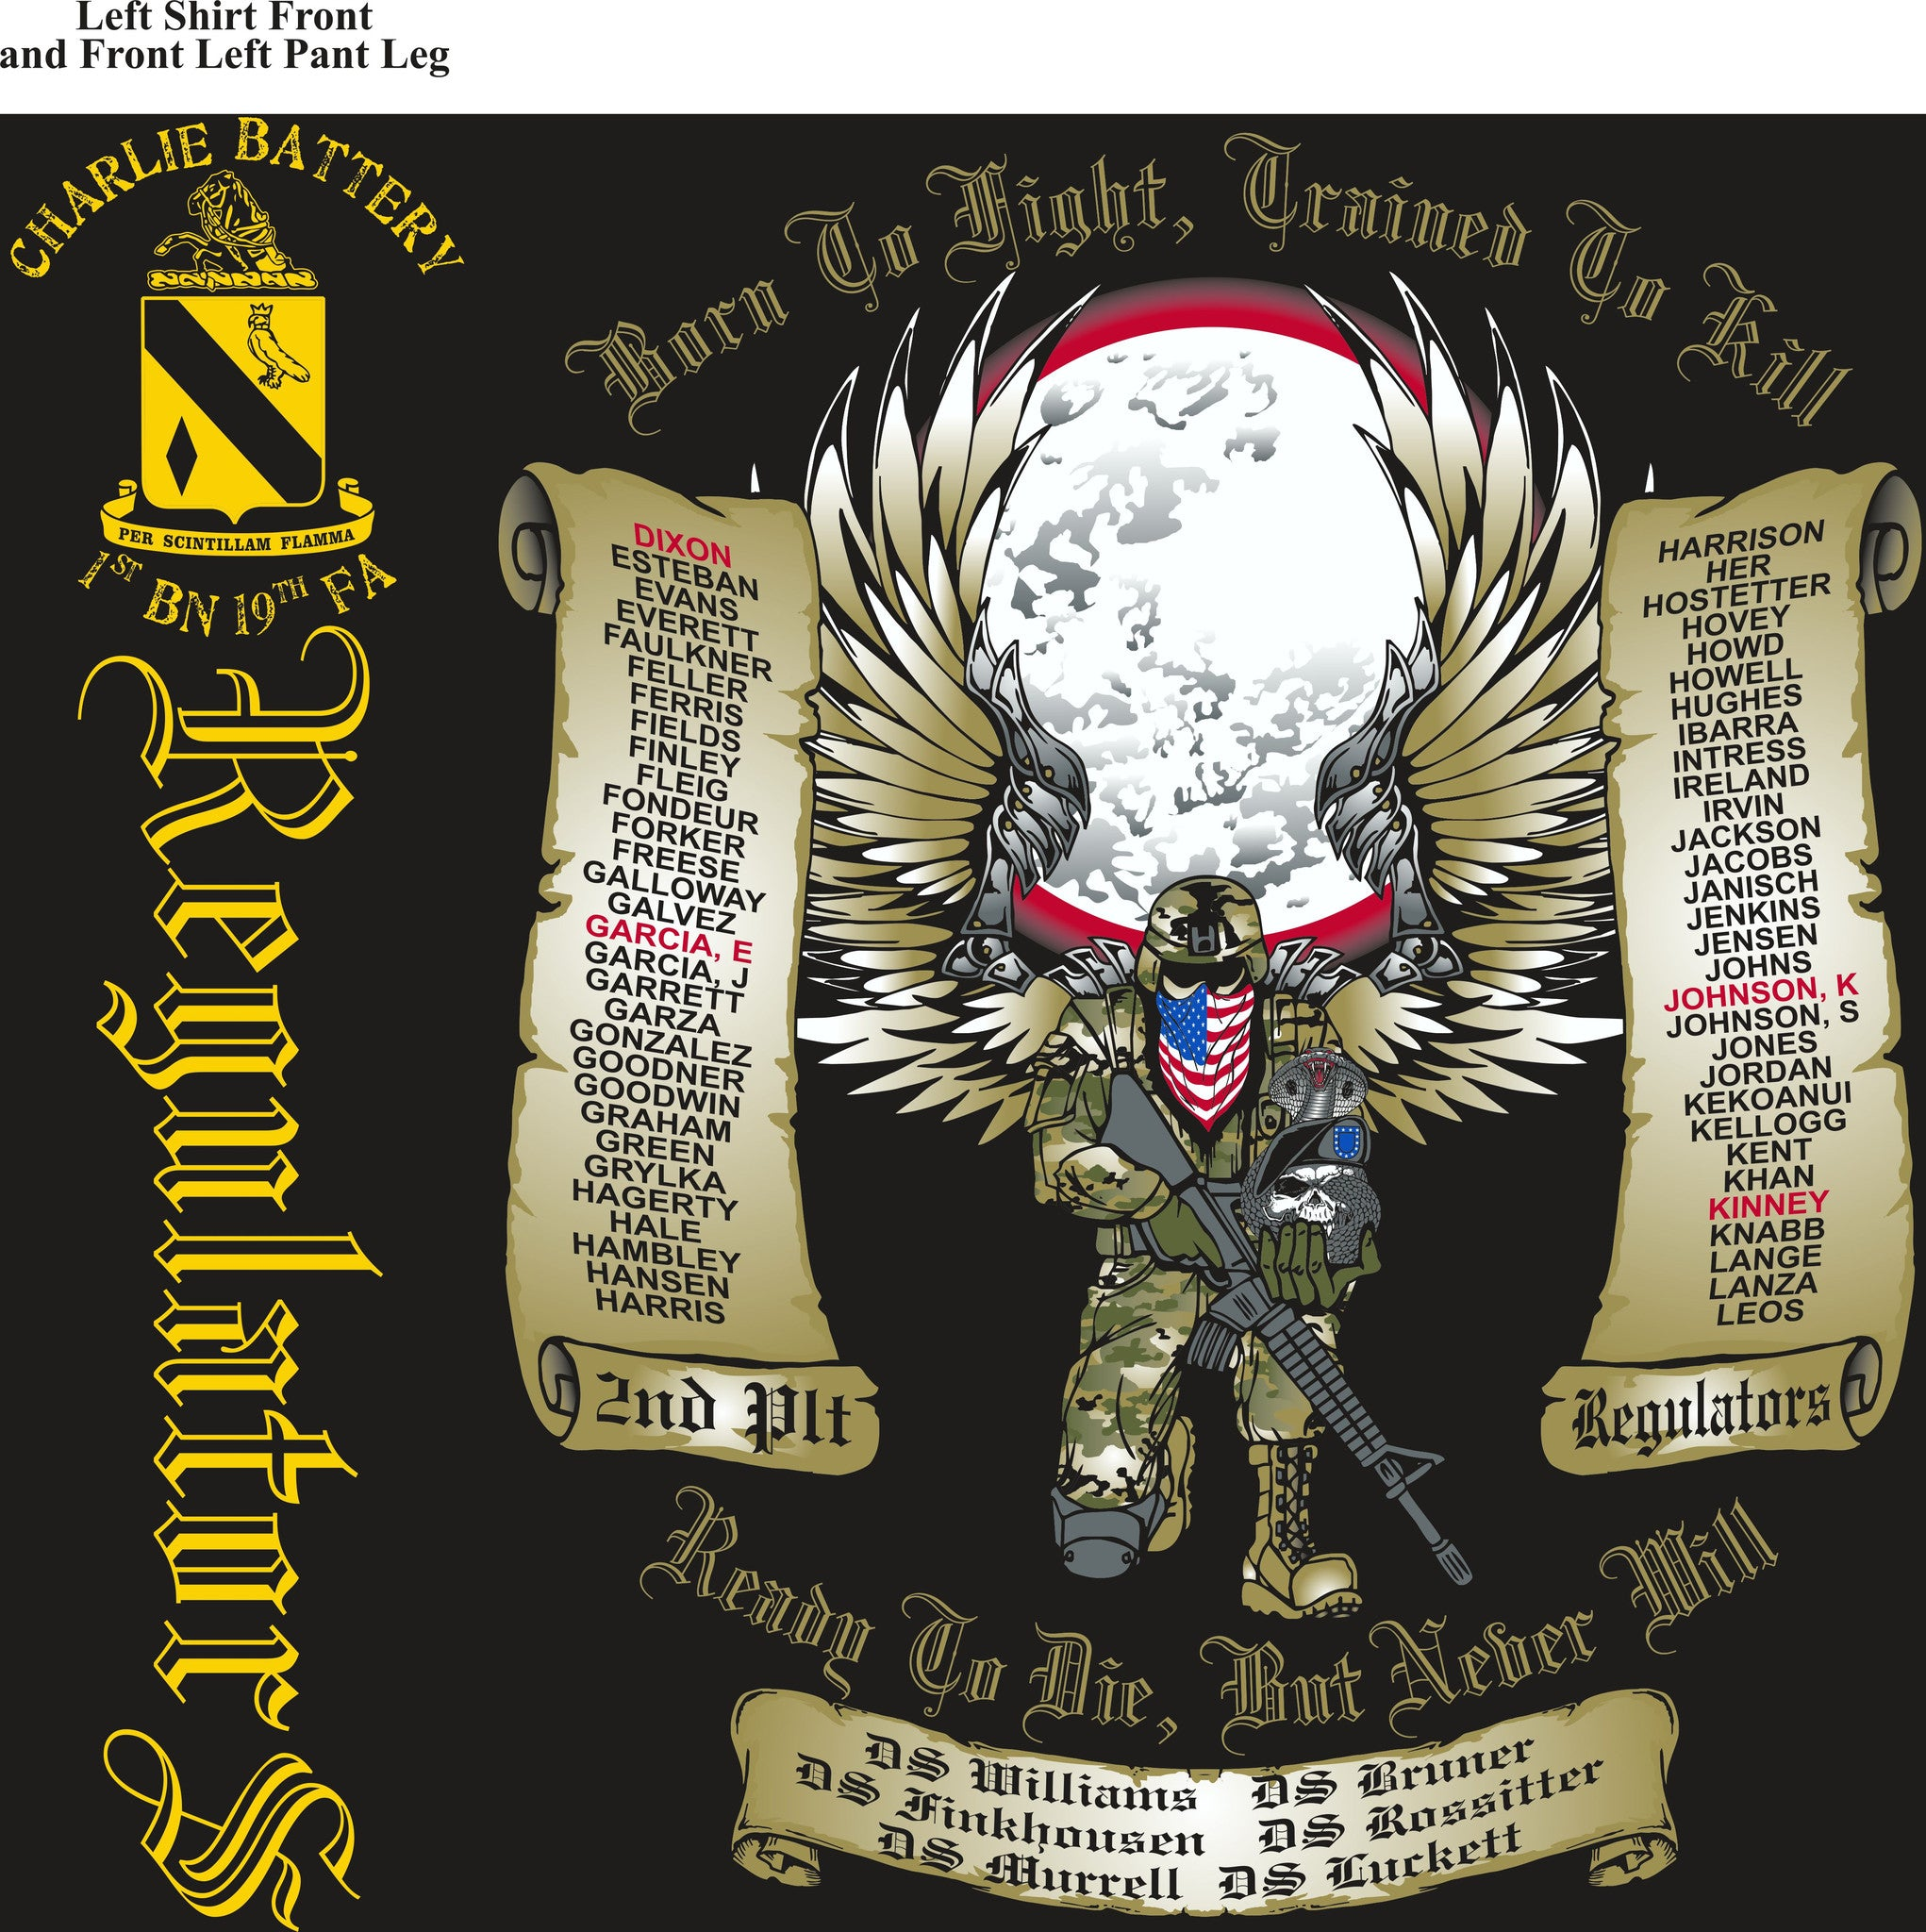 PLATOON SHIRTS (2nd generation print) CHARLIE 1st 19th REGULATORS SEPT 2016